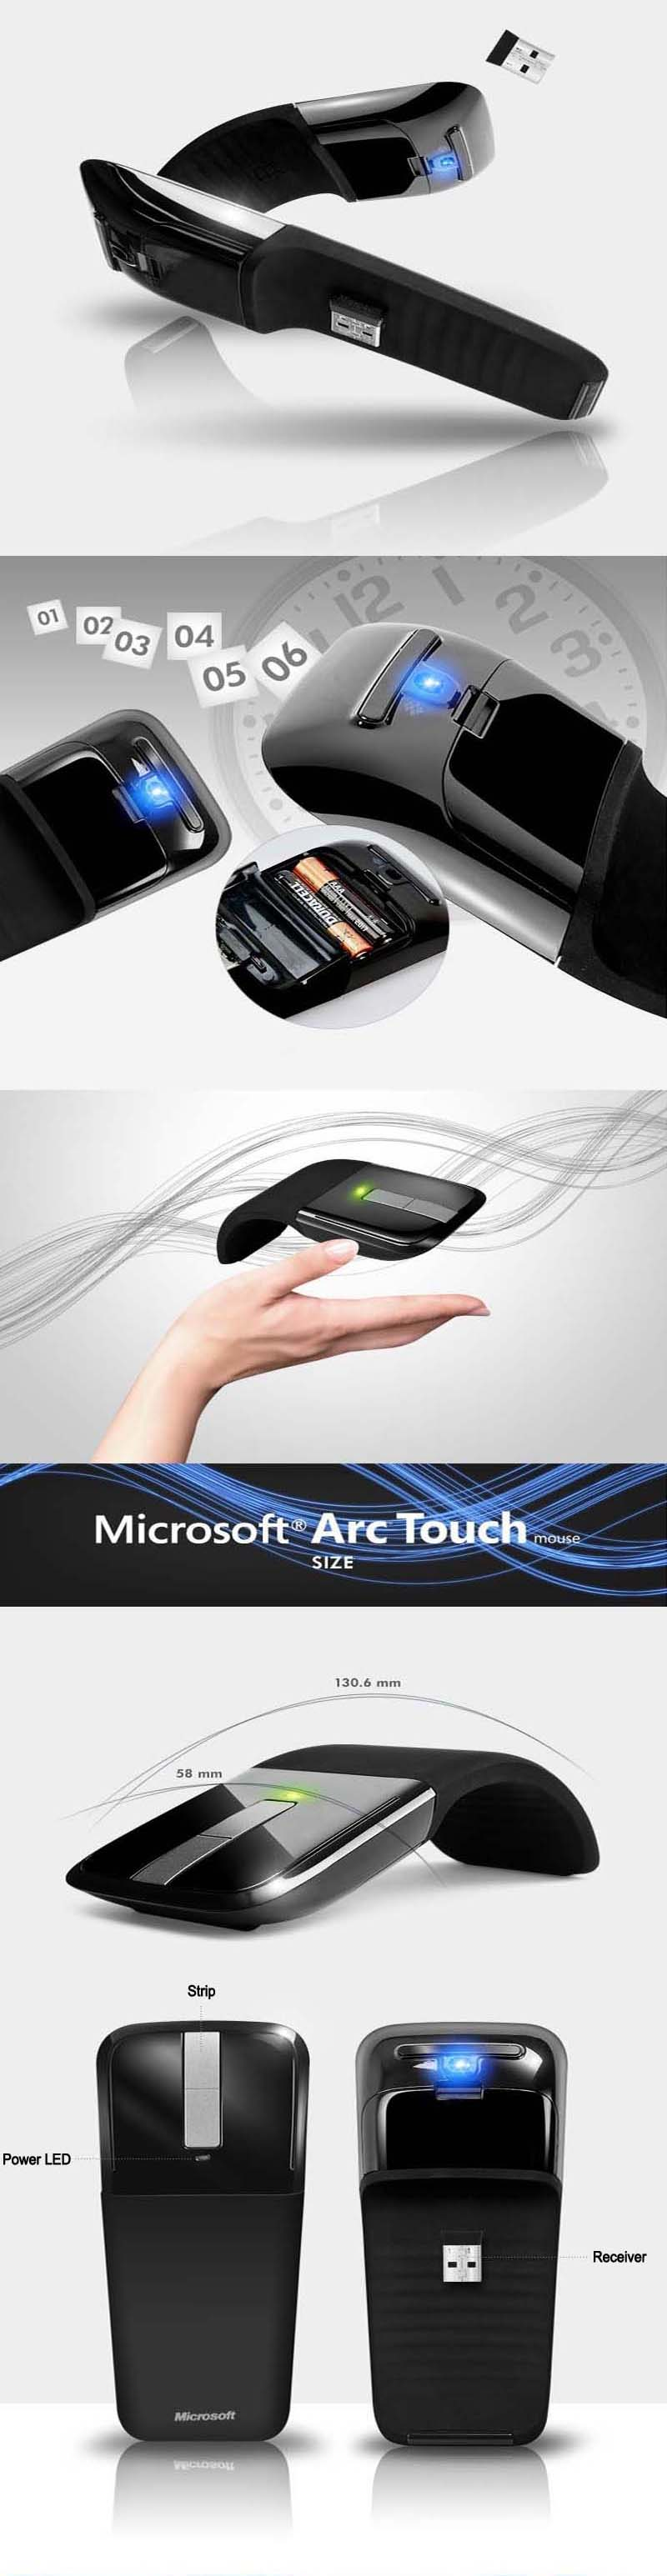 Microsoft Arc Mouse Model 1349 Driver Download